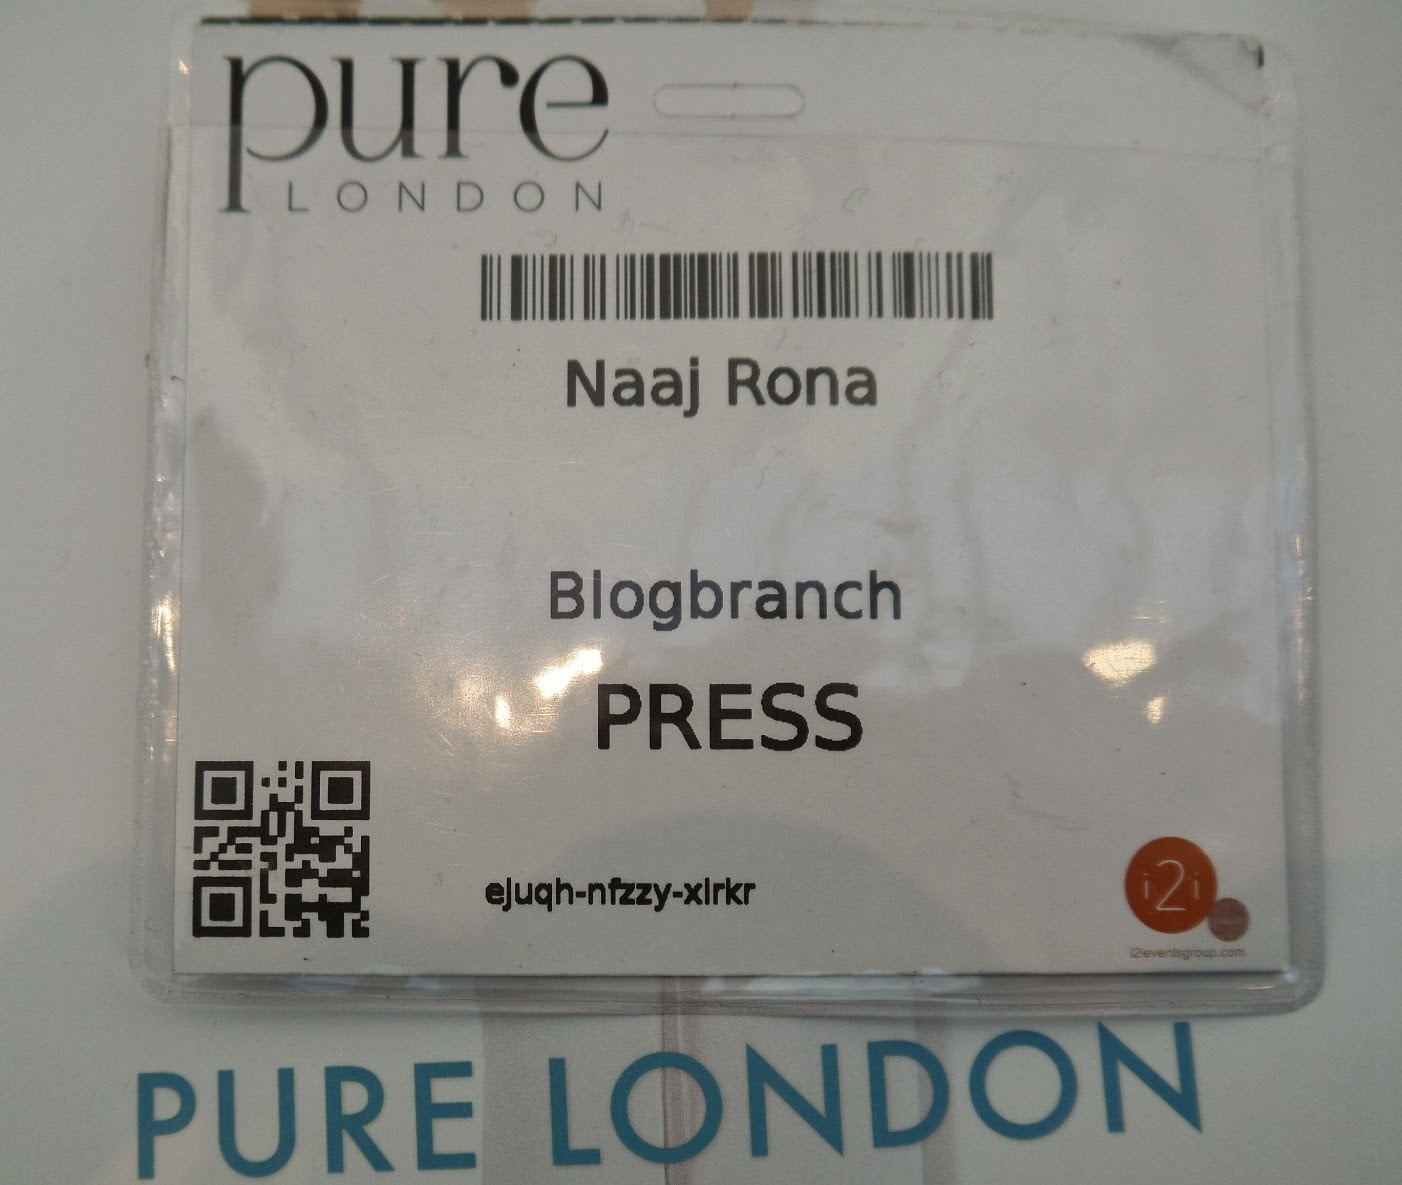 Thankful for the opportunity to visit Pure London Show